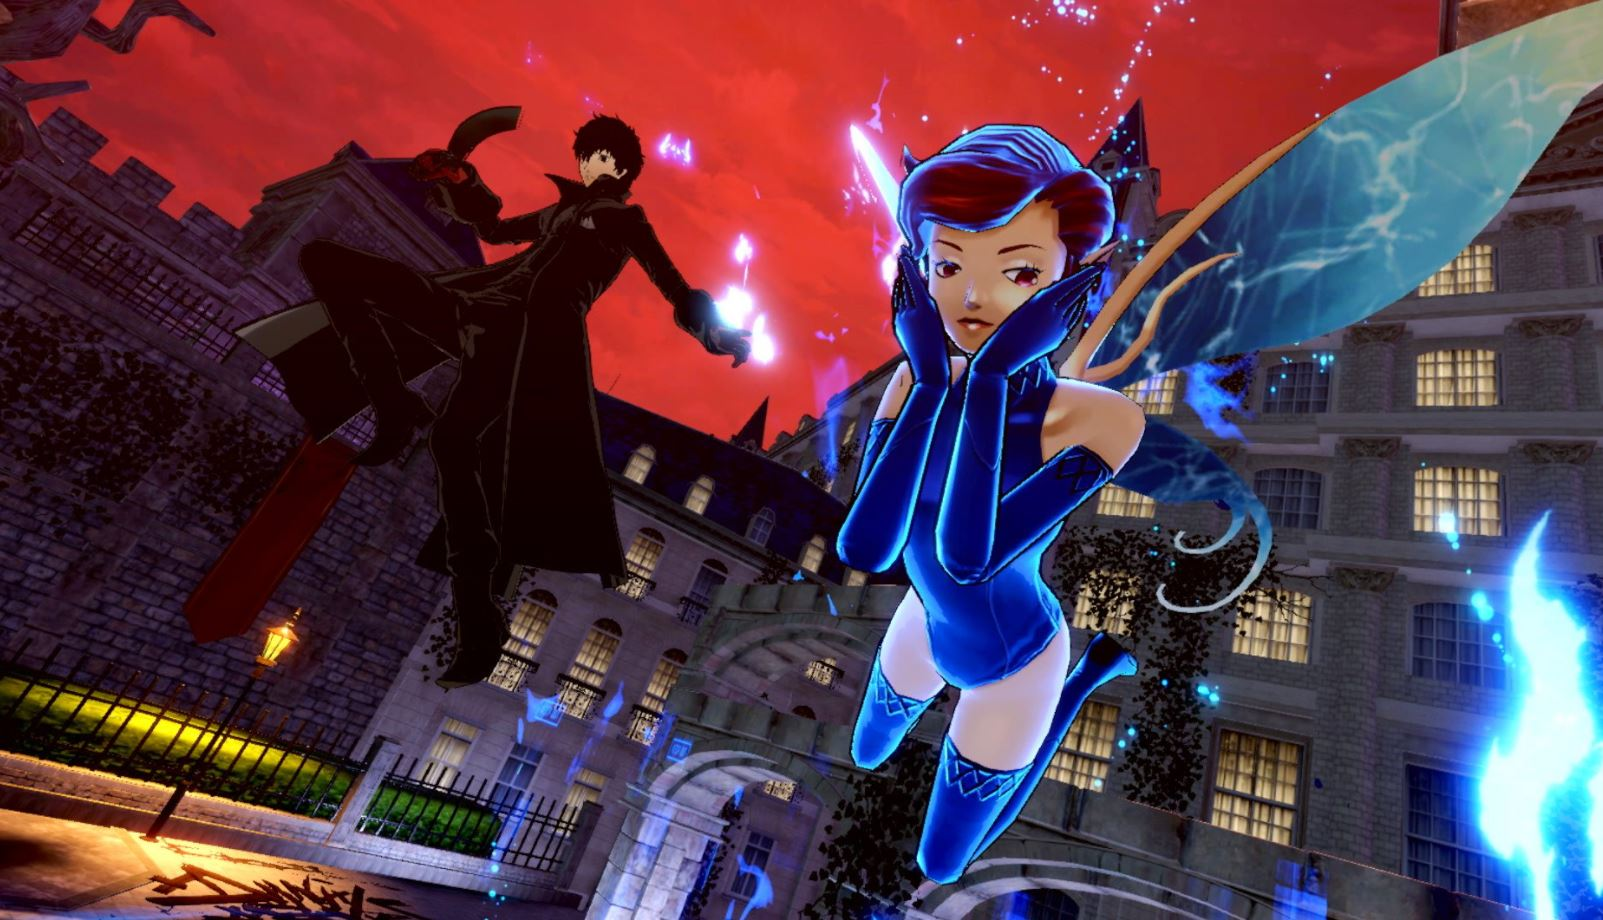 persona-5-strikers-hands-on-preview-ps4-personas-style-and-gameplay-translated-excellently-to-a-new-genre-4